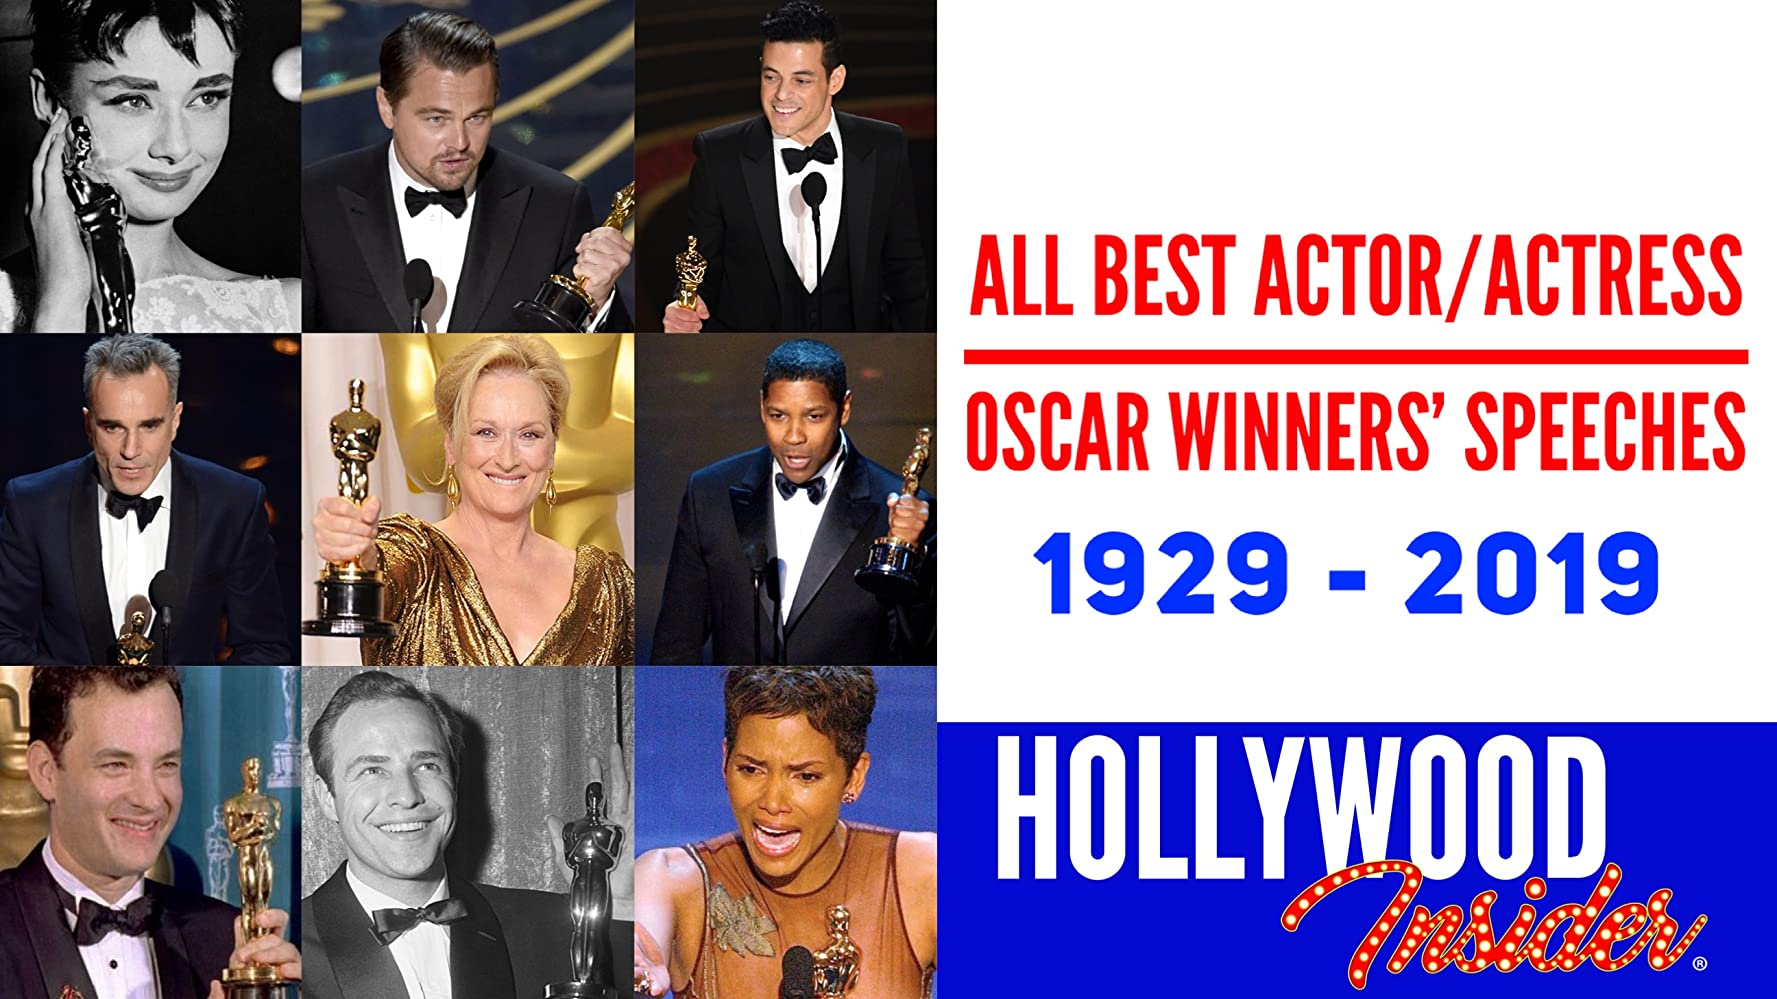 A Tribute to the Academy Awards: All Best Actor/Actress